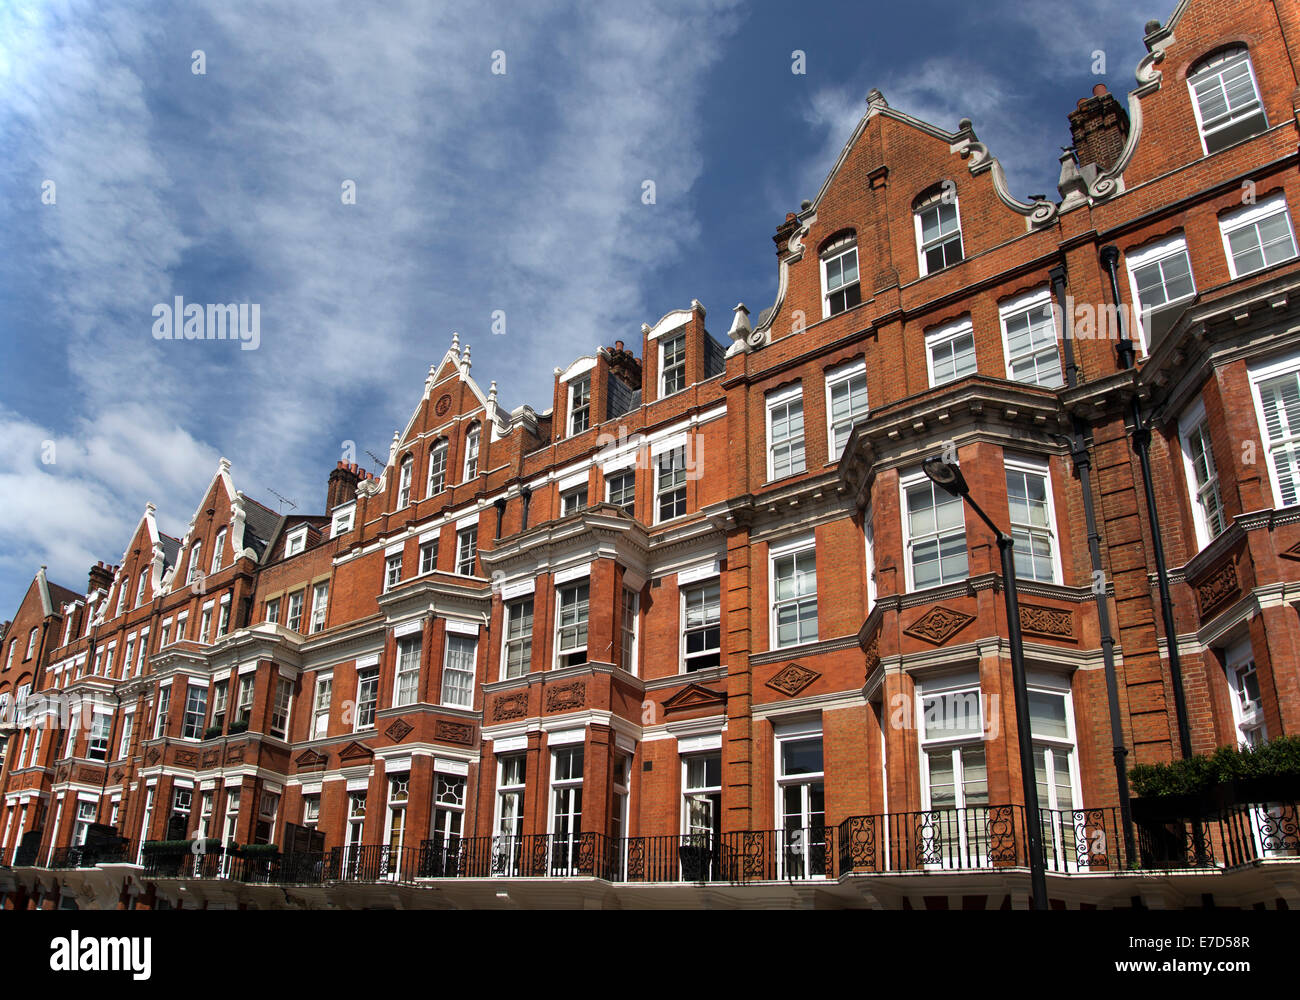 Row of red brick apartments in Mayfair, London, UK - Stock Image